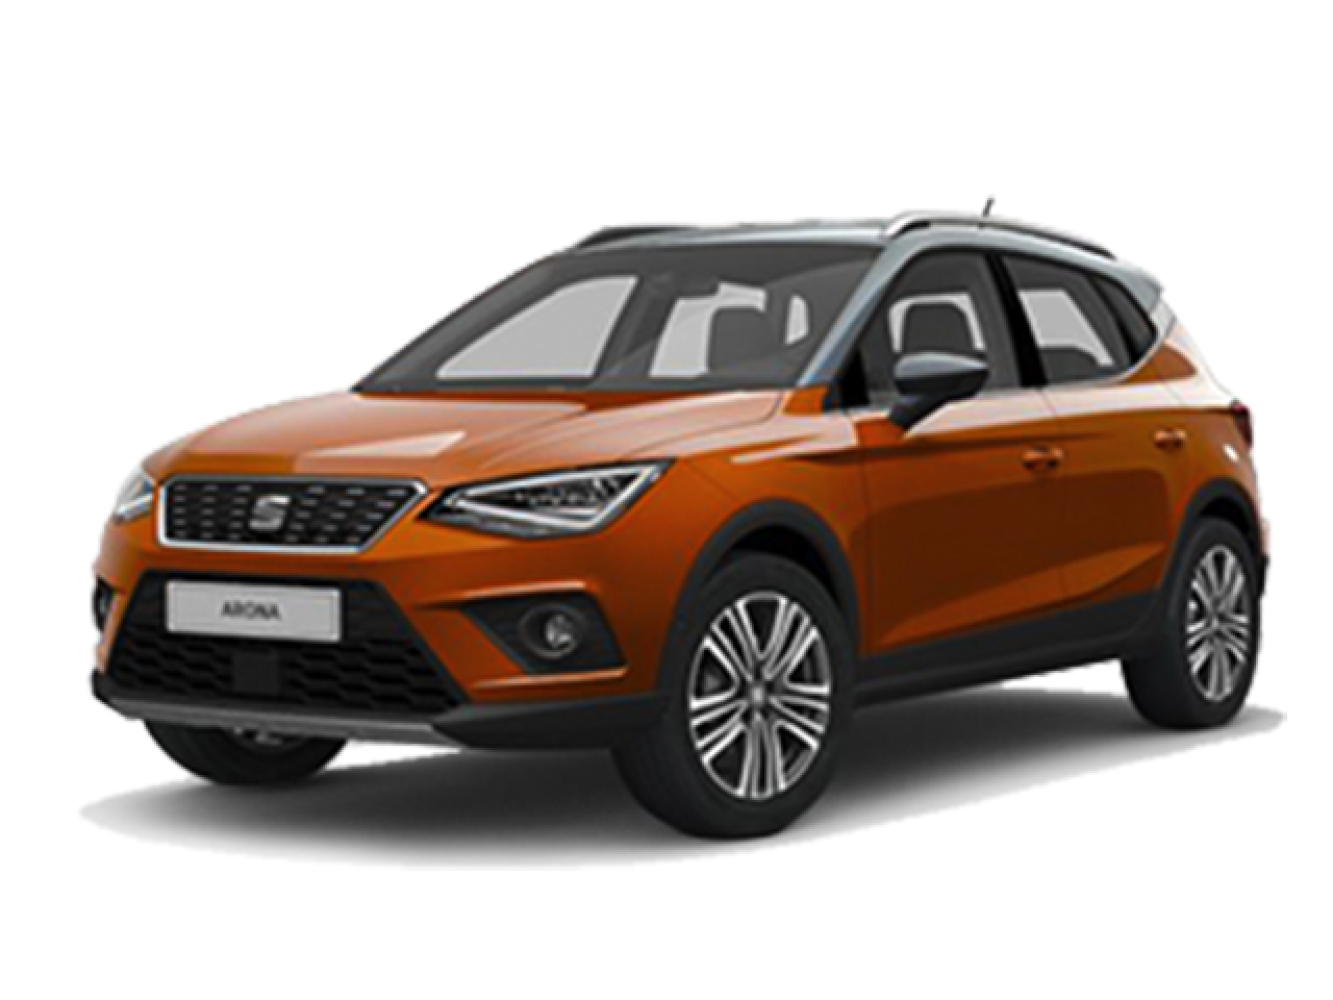 new seat arona 1 0 tsi 115 xcellence 5dr petrol hatchback for sale bristol street. Black Bedroom Furniture Sets. Home Design Ideas